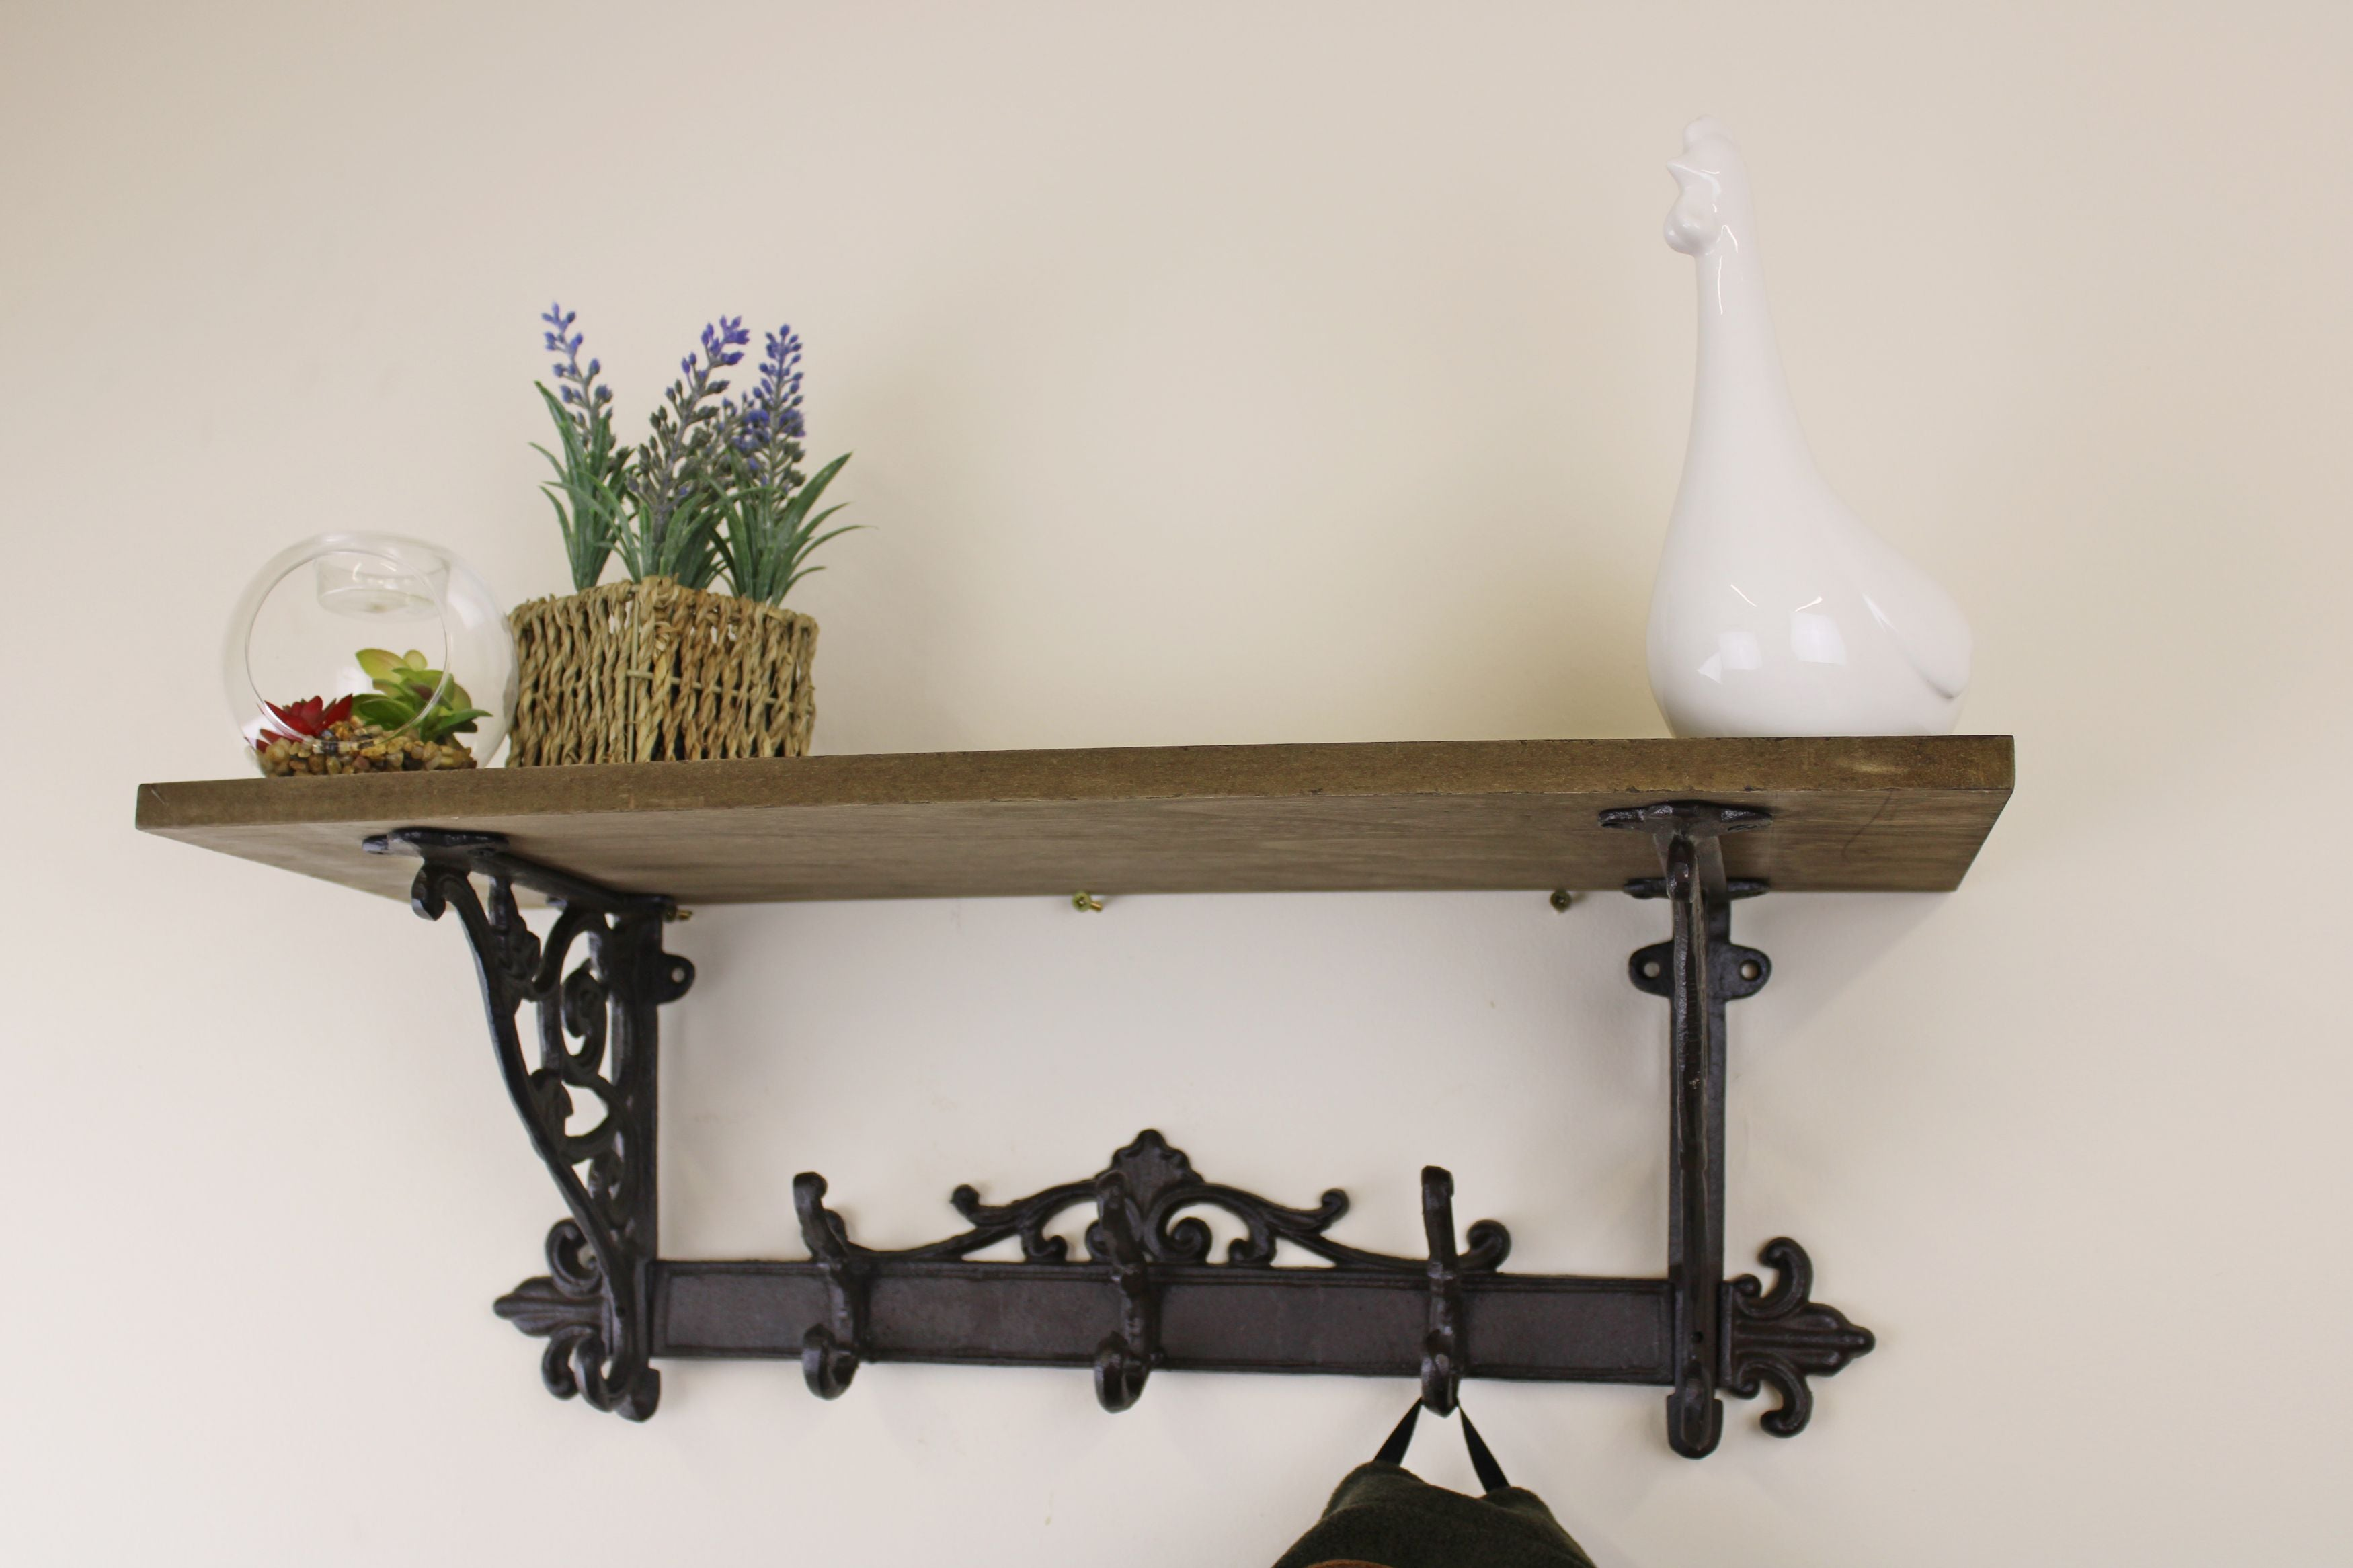 Wooden Wall Shelf with Cast Iron Coat Hooks, Clasps & Hooks by Low Cost Gifts